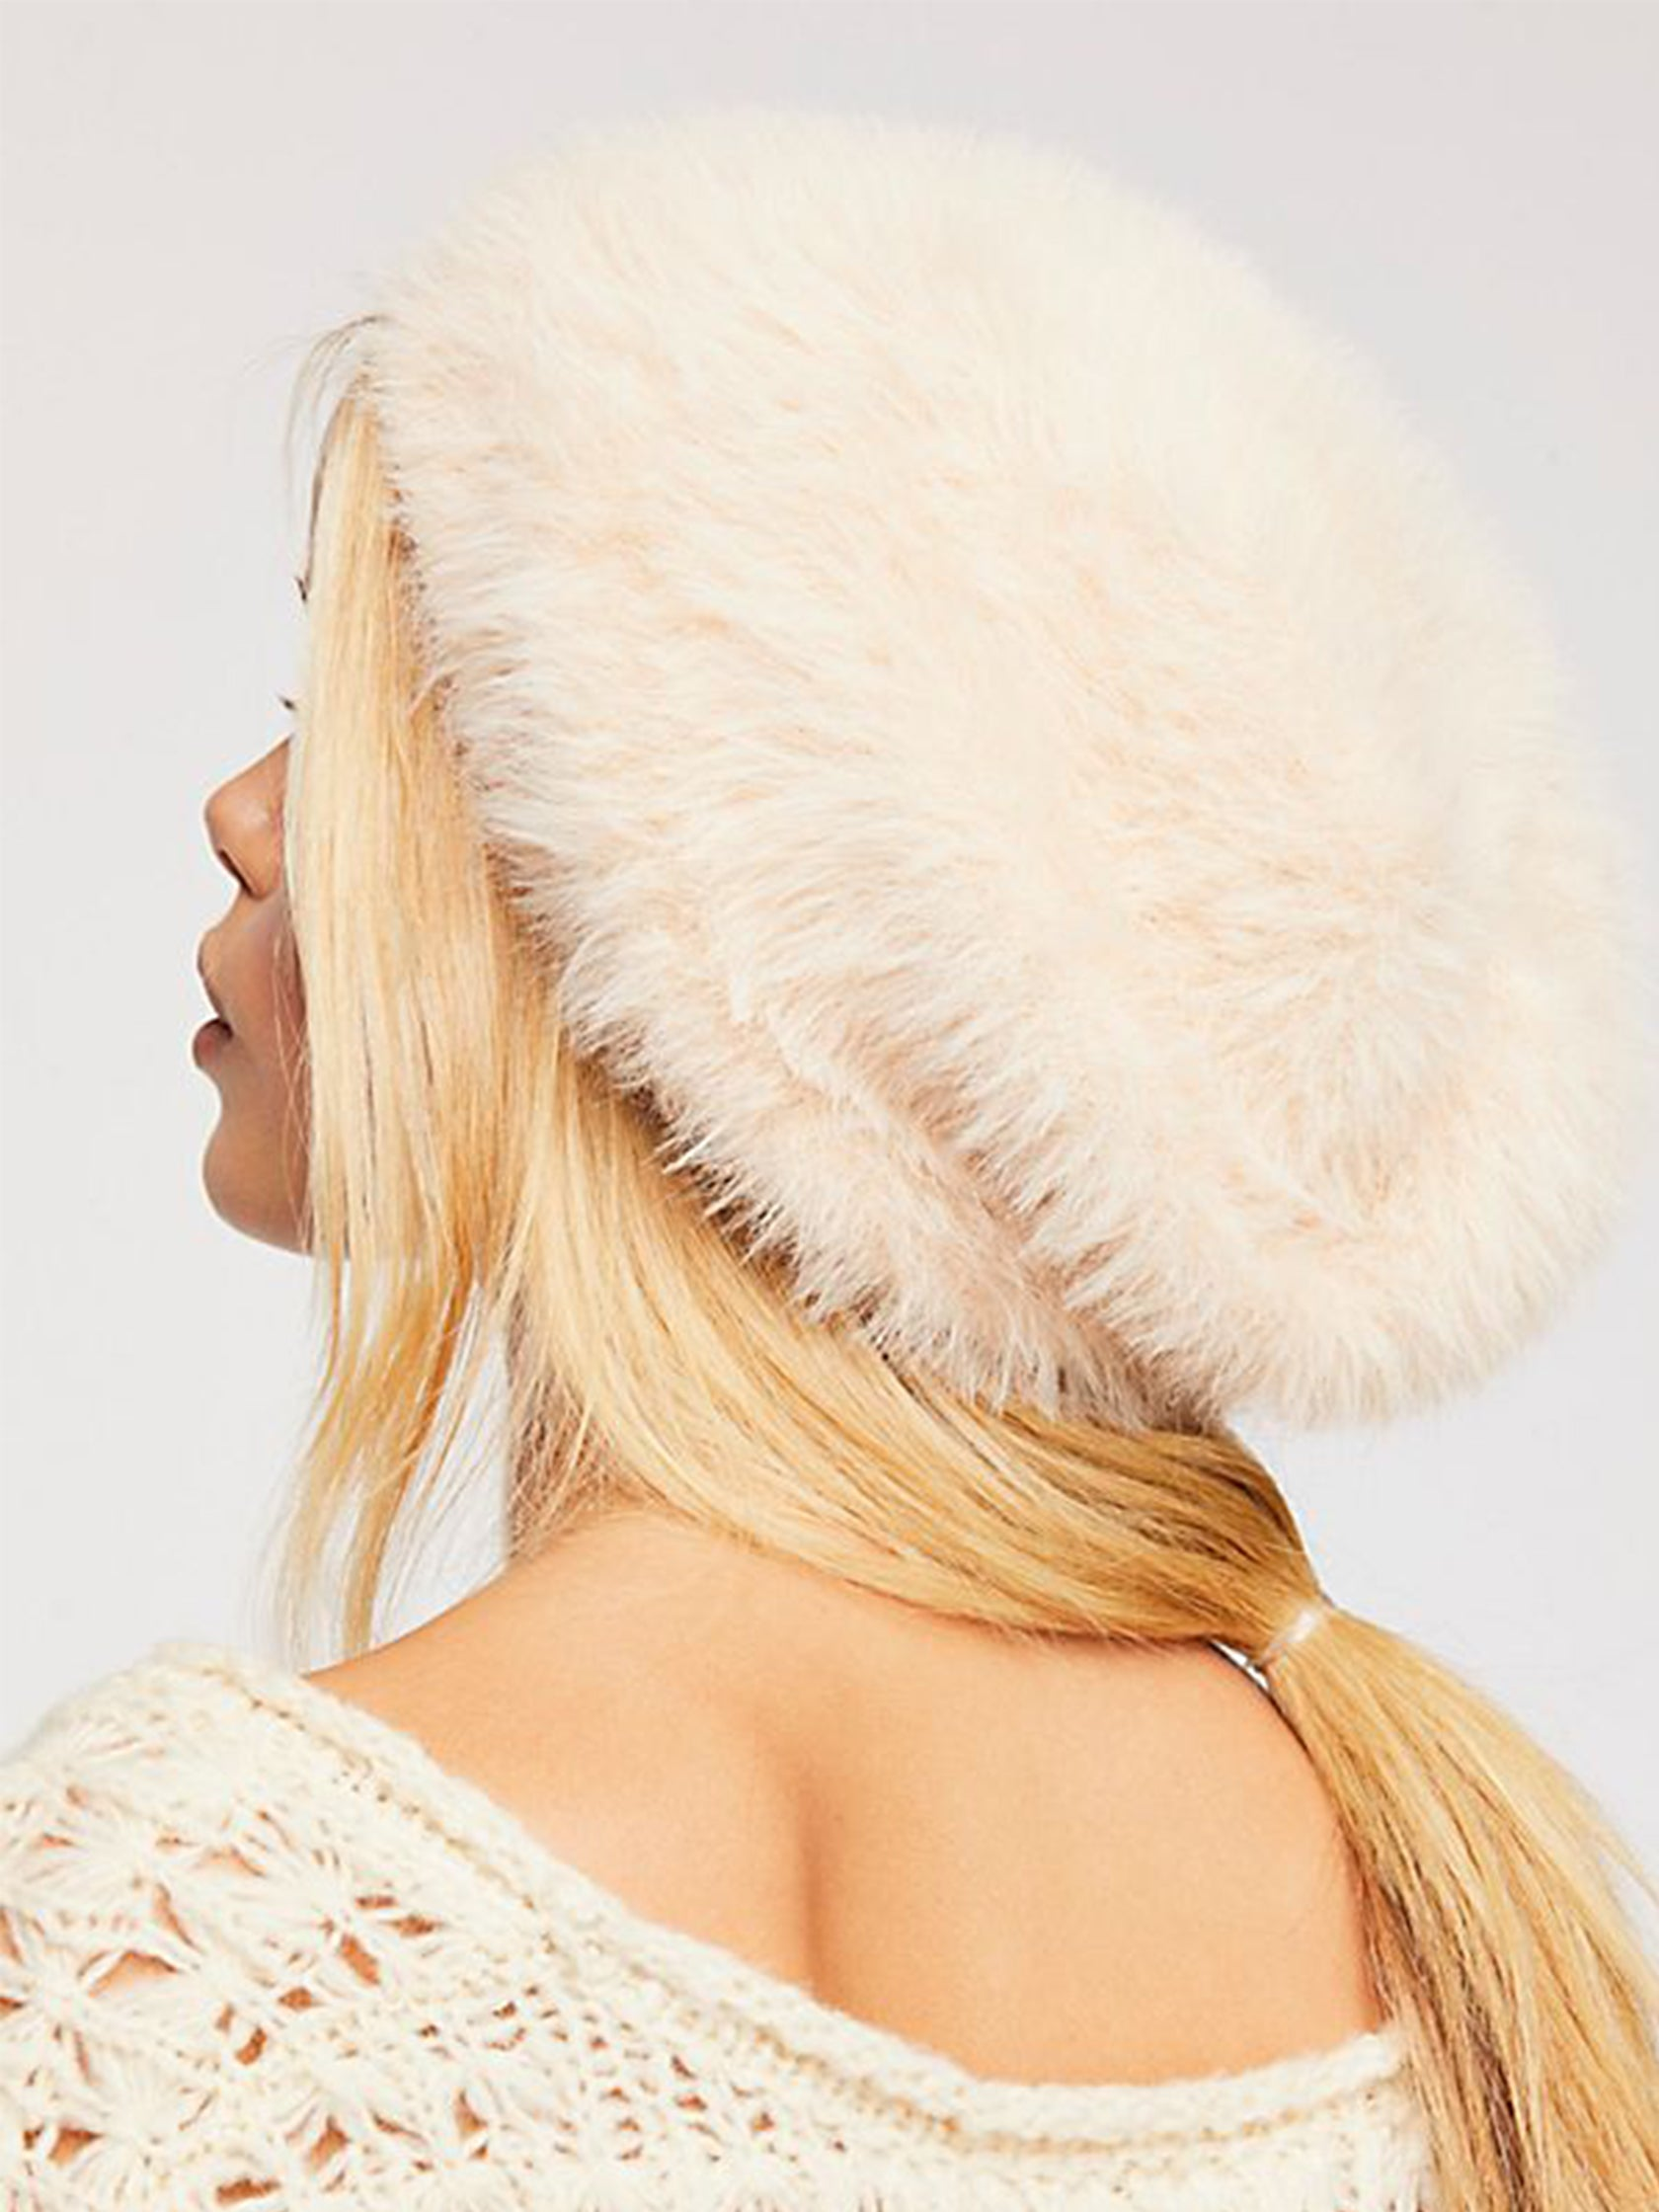 Women wearing a hat rental from Free People called Big Sky Slouchy Beanie